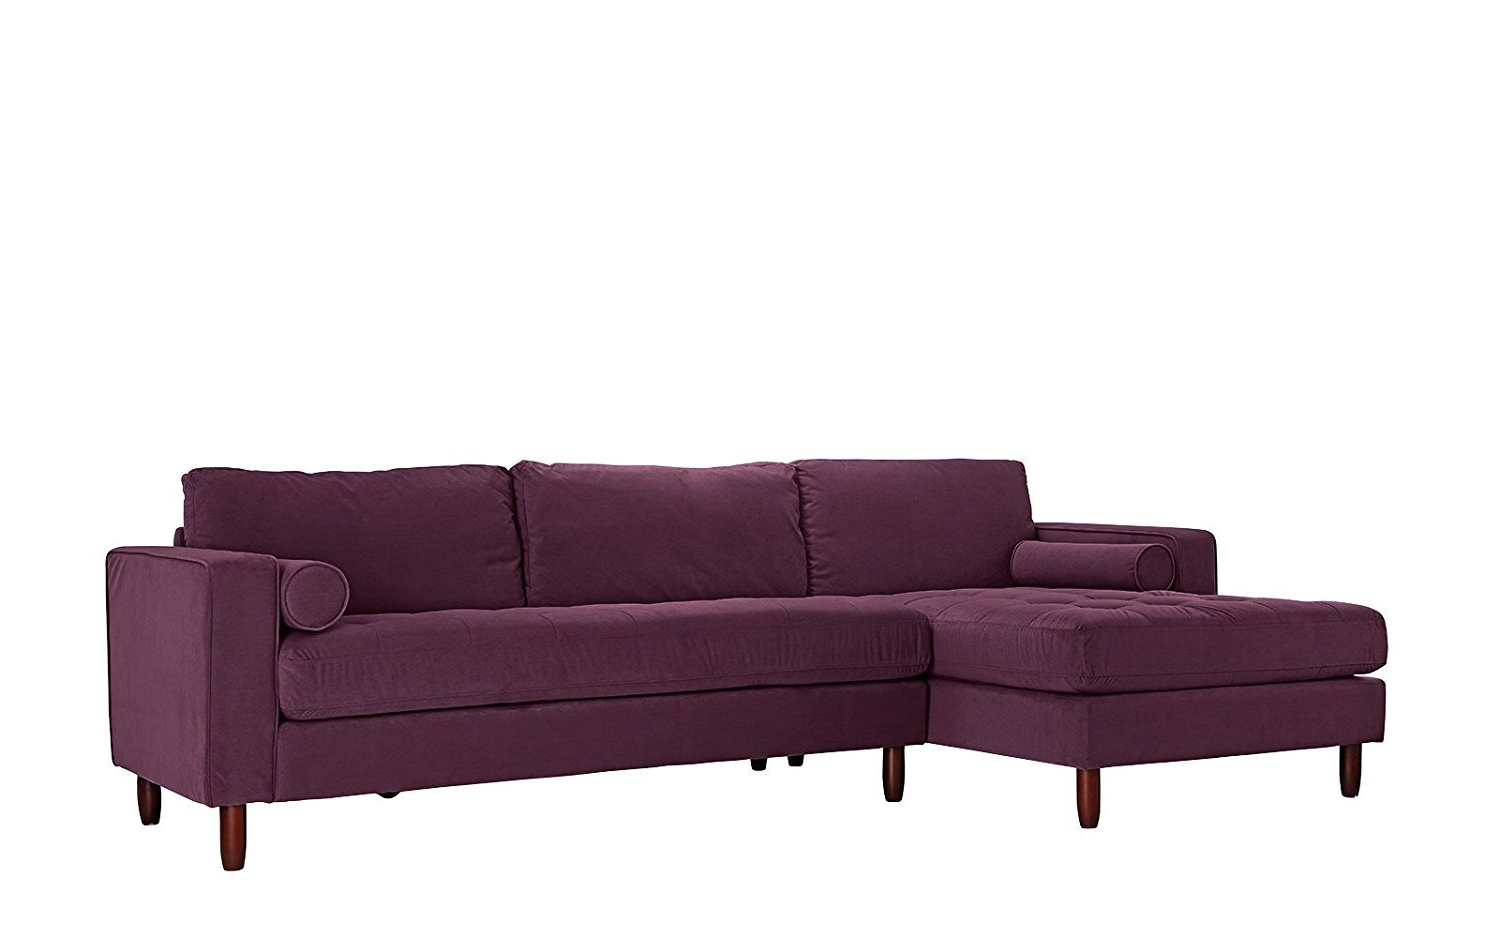 Tufted Velvet Fabric Sectional Sofa, L Shape Couch Left With Regard To Well Known Florence Mid Century Modern Velvet Left Sectional Sofas (View 7 of 20)